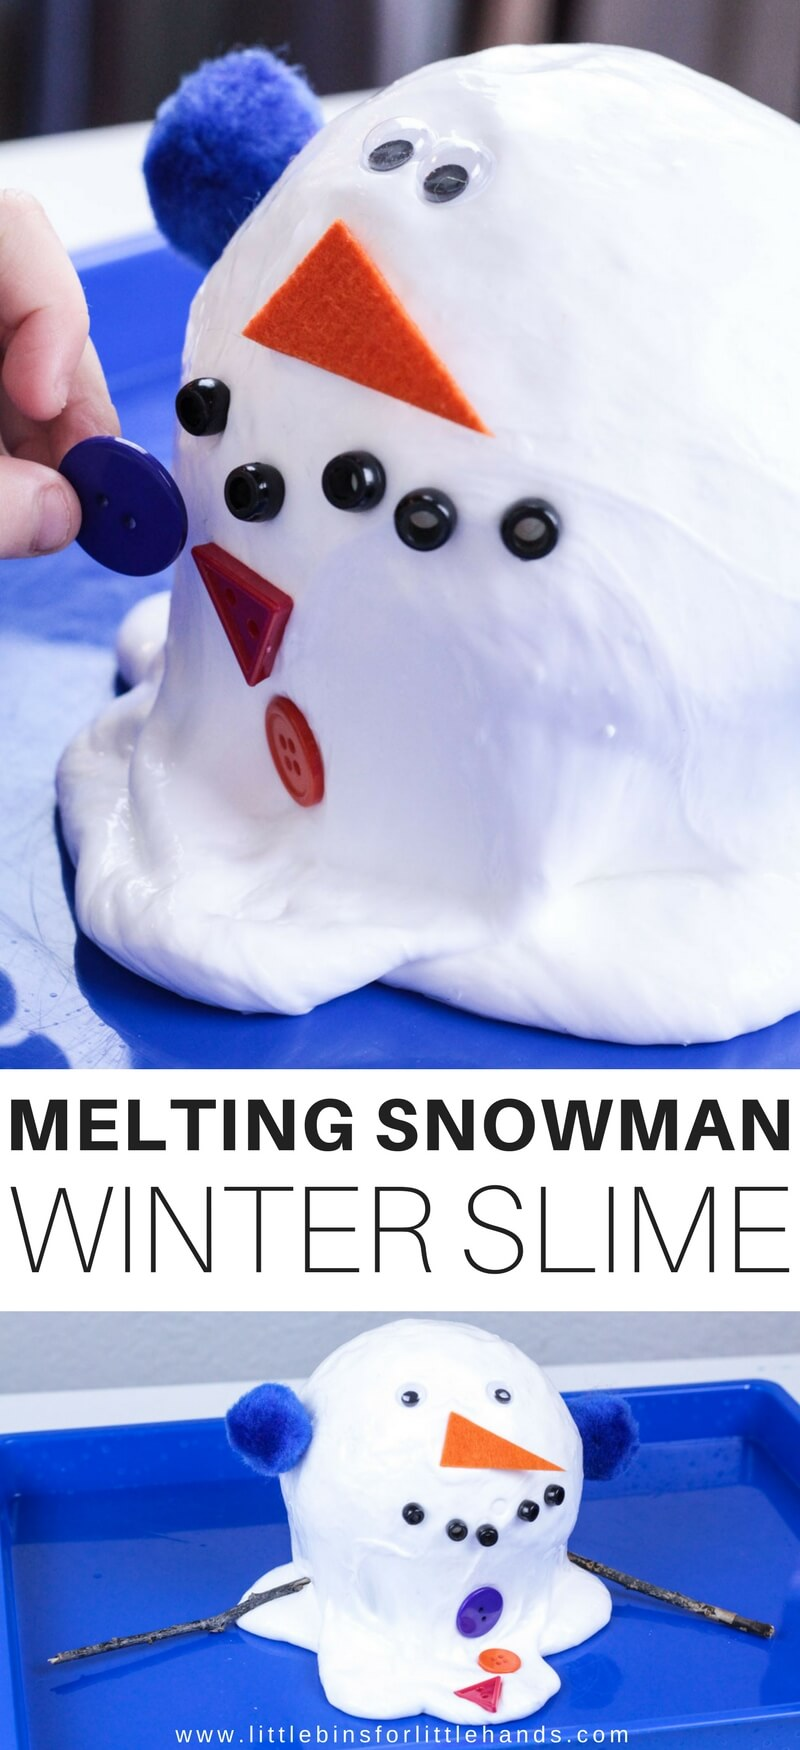 Have you ever built a snowman late spring only to find the next day it looks a bit droopy or melty! We sure have, and it inspired us to make a melting snowman out of slime. Why slime? Because our homemade slime oozes and spreads of course and makes the perfect look for our homemade melting snowman slime recipe. No real snow? No problem, make snow slime instead!